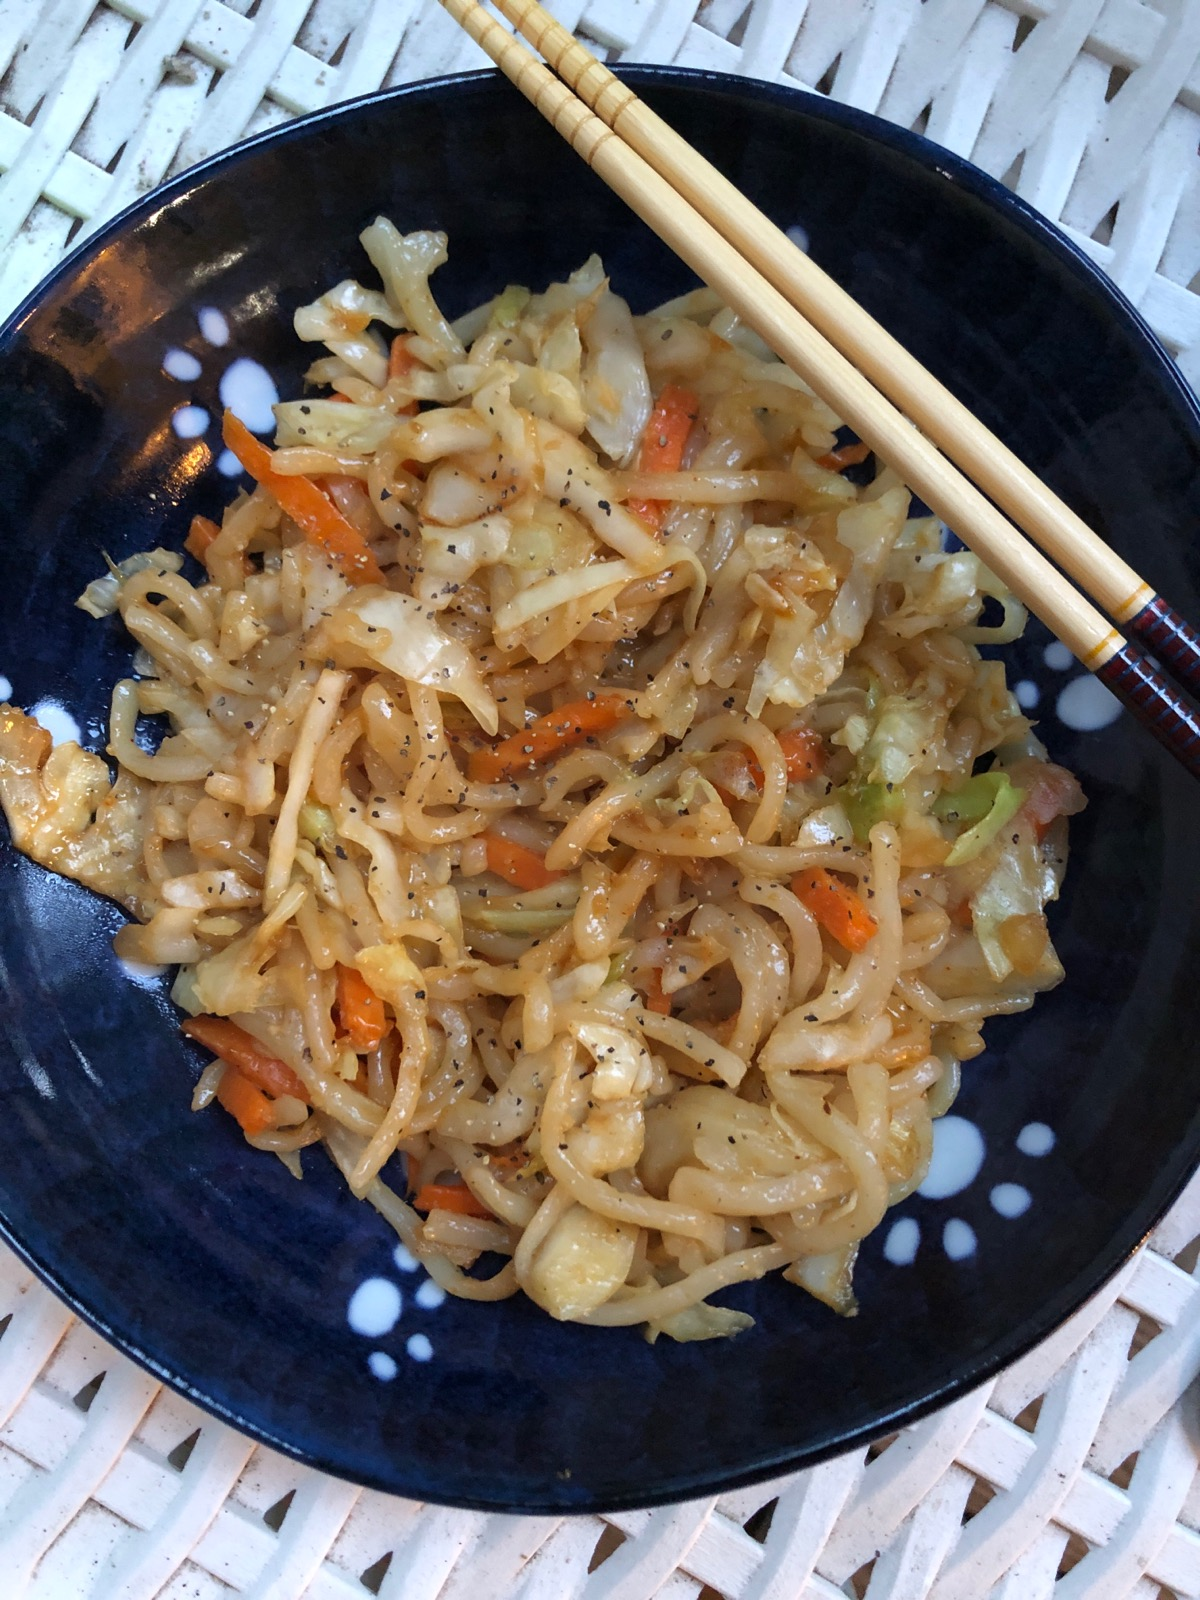 """Shredded cabbage, bell peppers, carrots, garlic, and onions combine with strips of boneless, skinless chicken breast meat and udon noodles in this delicious stir fry that's ready in 30 minutes! """"Similar to yakisoba but made with thick, white udon noodles and tossed with a much simpler sauce,"""" says Diana71. """"Often used in soups, udon noodles are also delicious fried--the texture is just awesome because they are chewy. Try to find frozen or fresh udon noodles. Dried udon noodles will work, too, but you'll lose some of the signature texture."""""""